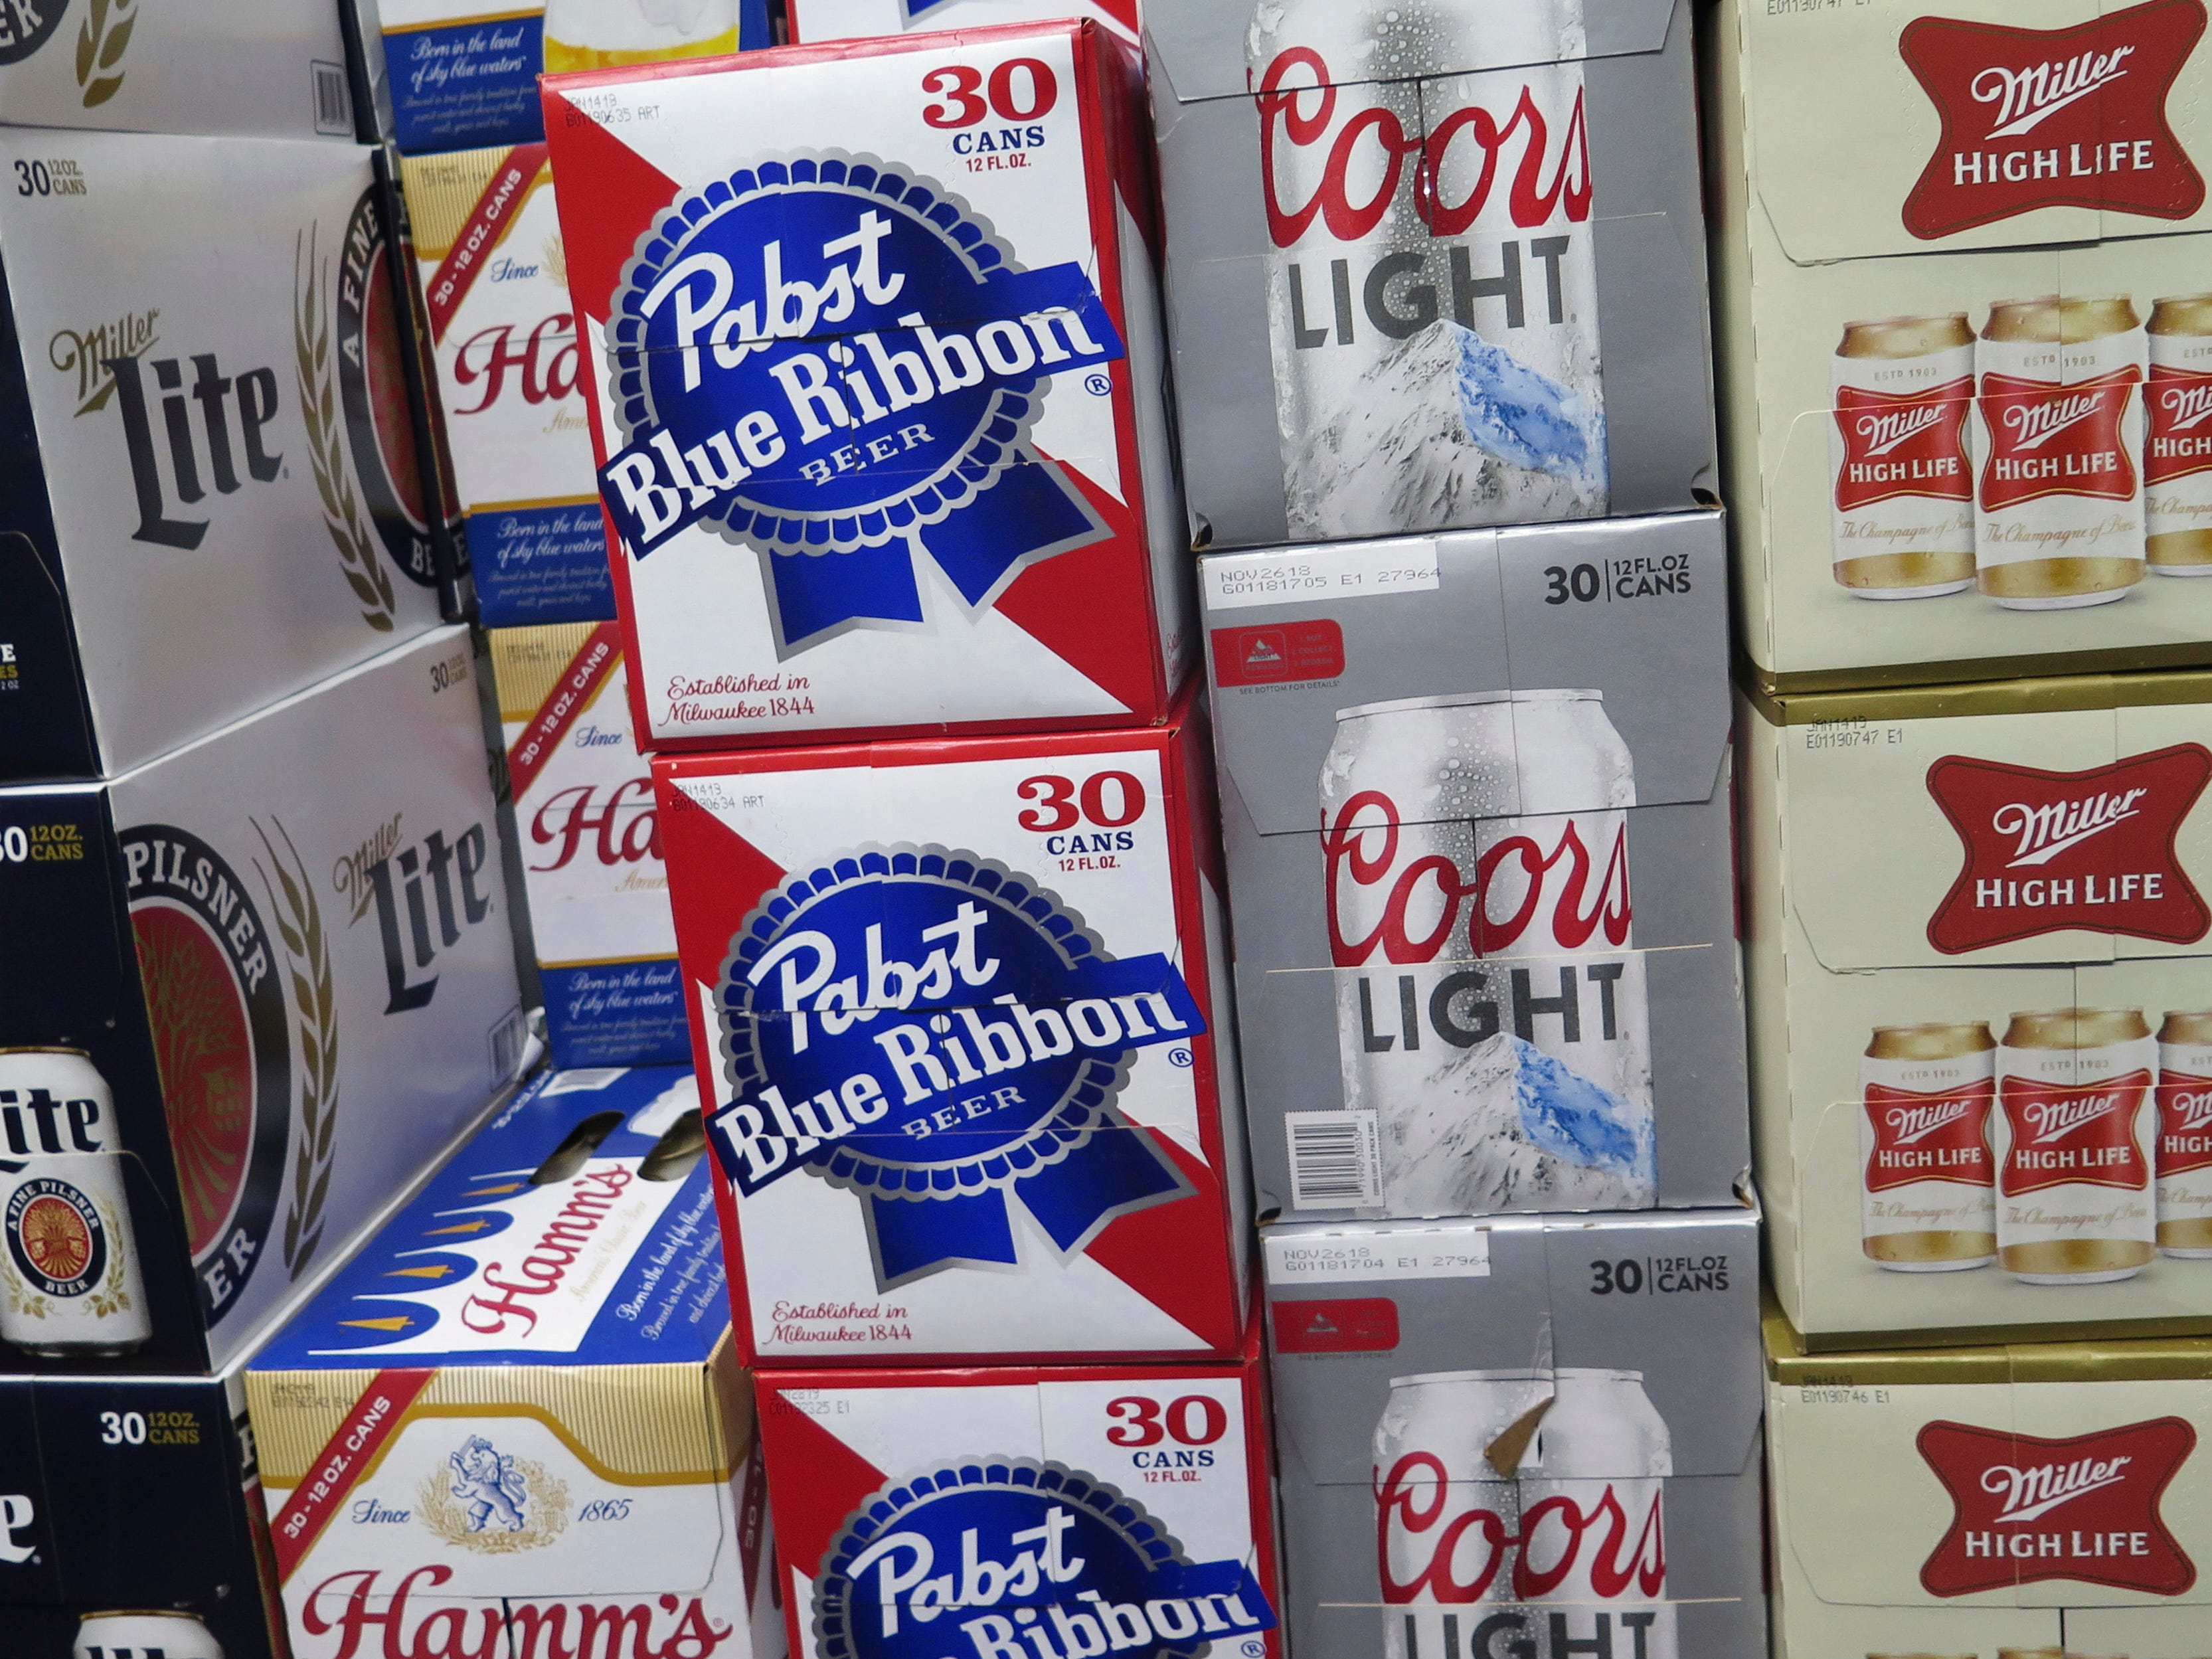 Brewing controversy: Pabst says MillerCoors is trying to put it out of business